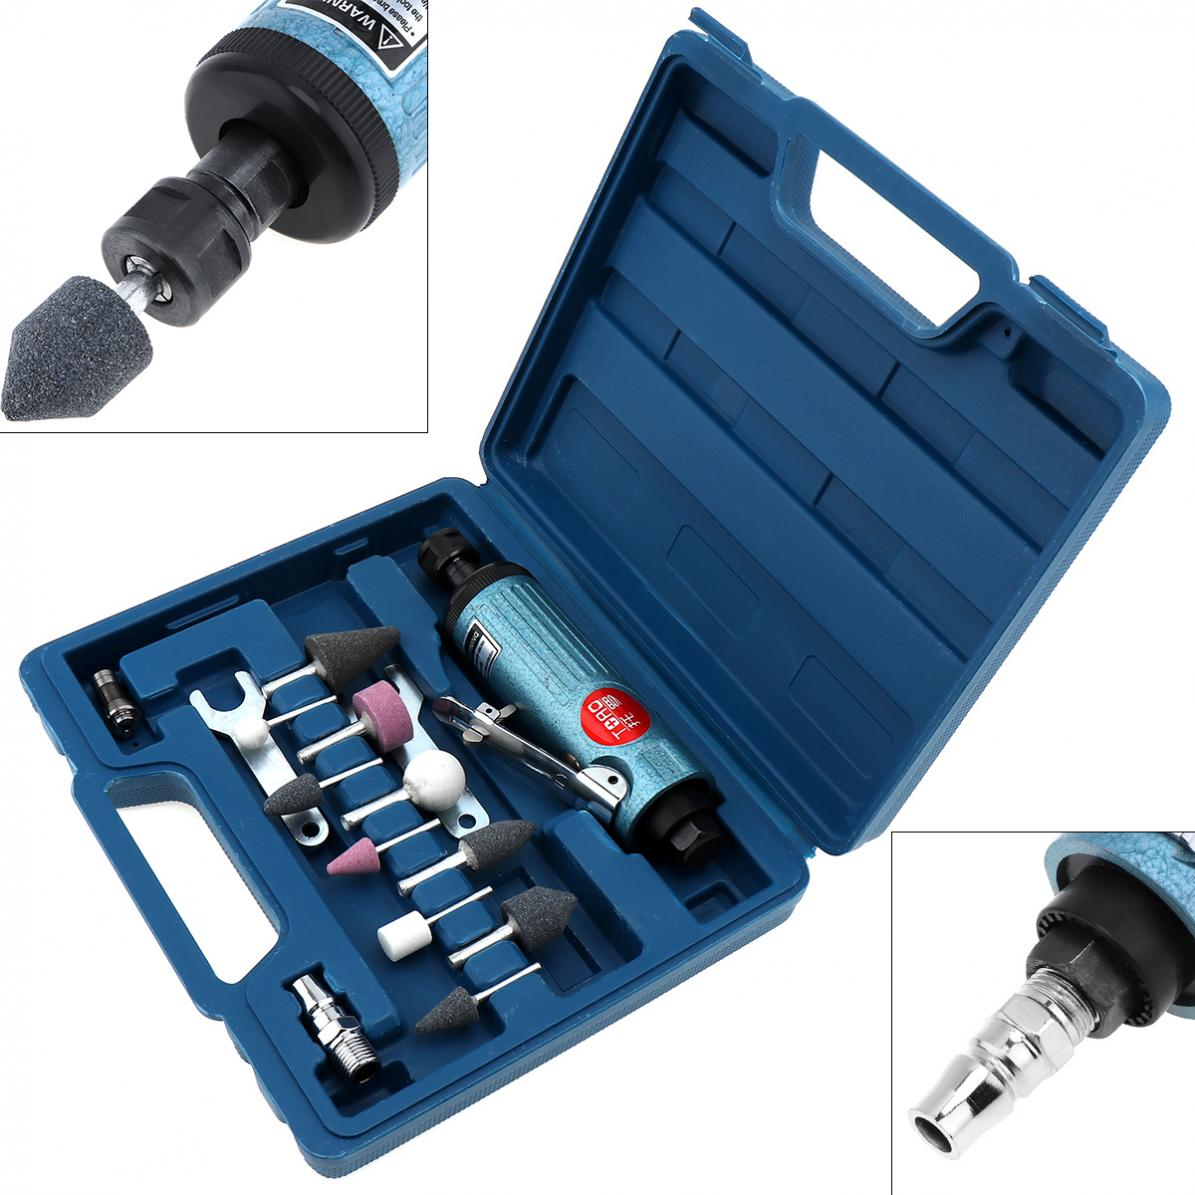 TORO New 1/4 Inch Large Pneumatic Grinding Machine Mold Air Compressor Die Grinder Tool with 14pcs Rotary Tool Kit